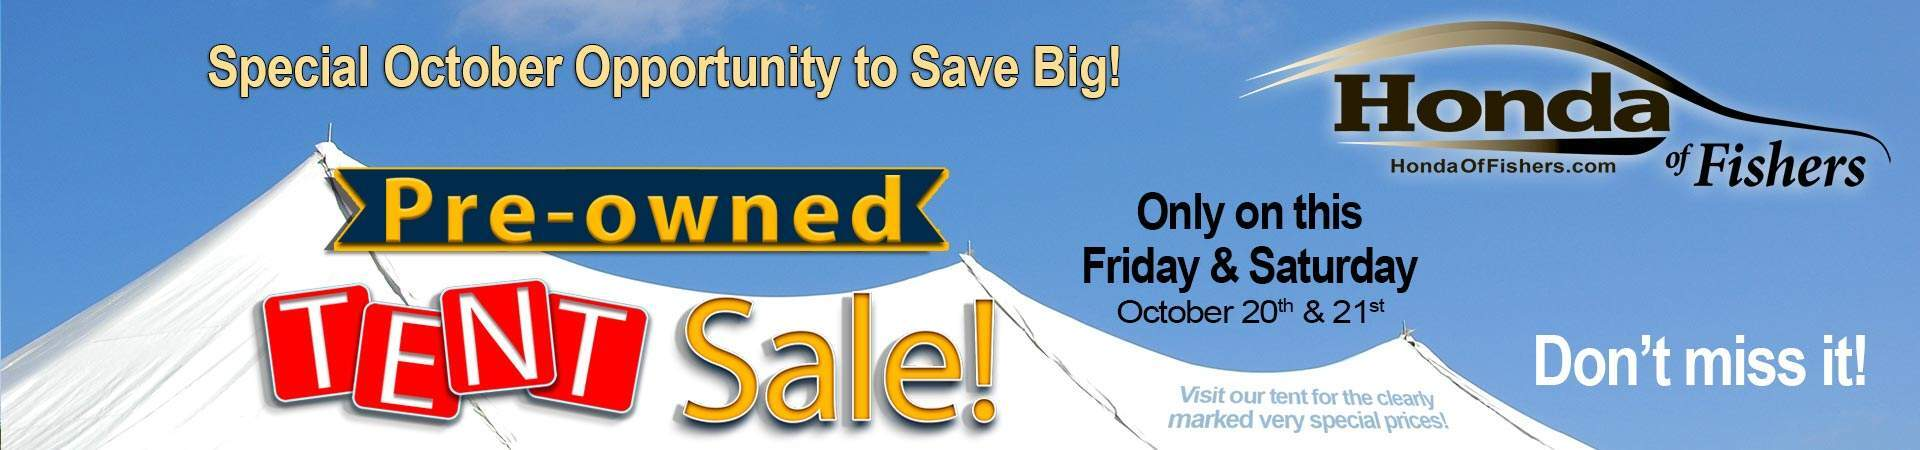 Used Car Tent Sale